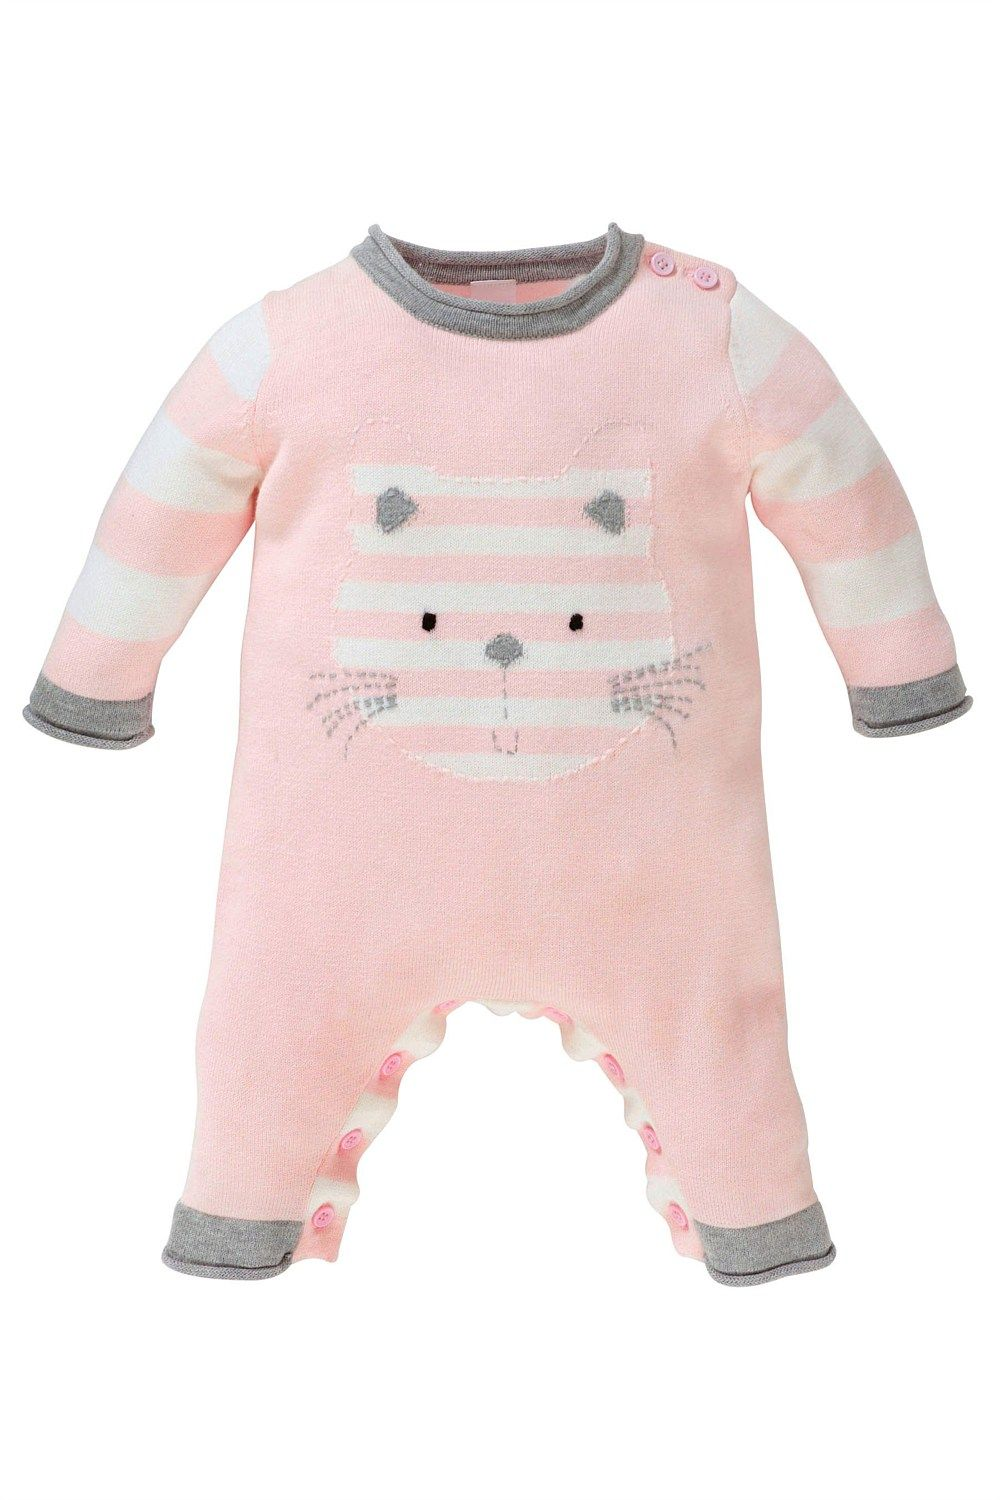 Newborn Clothing - Baby Clothes and Infantwear - Next Cat Knitted ...